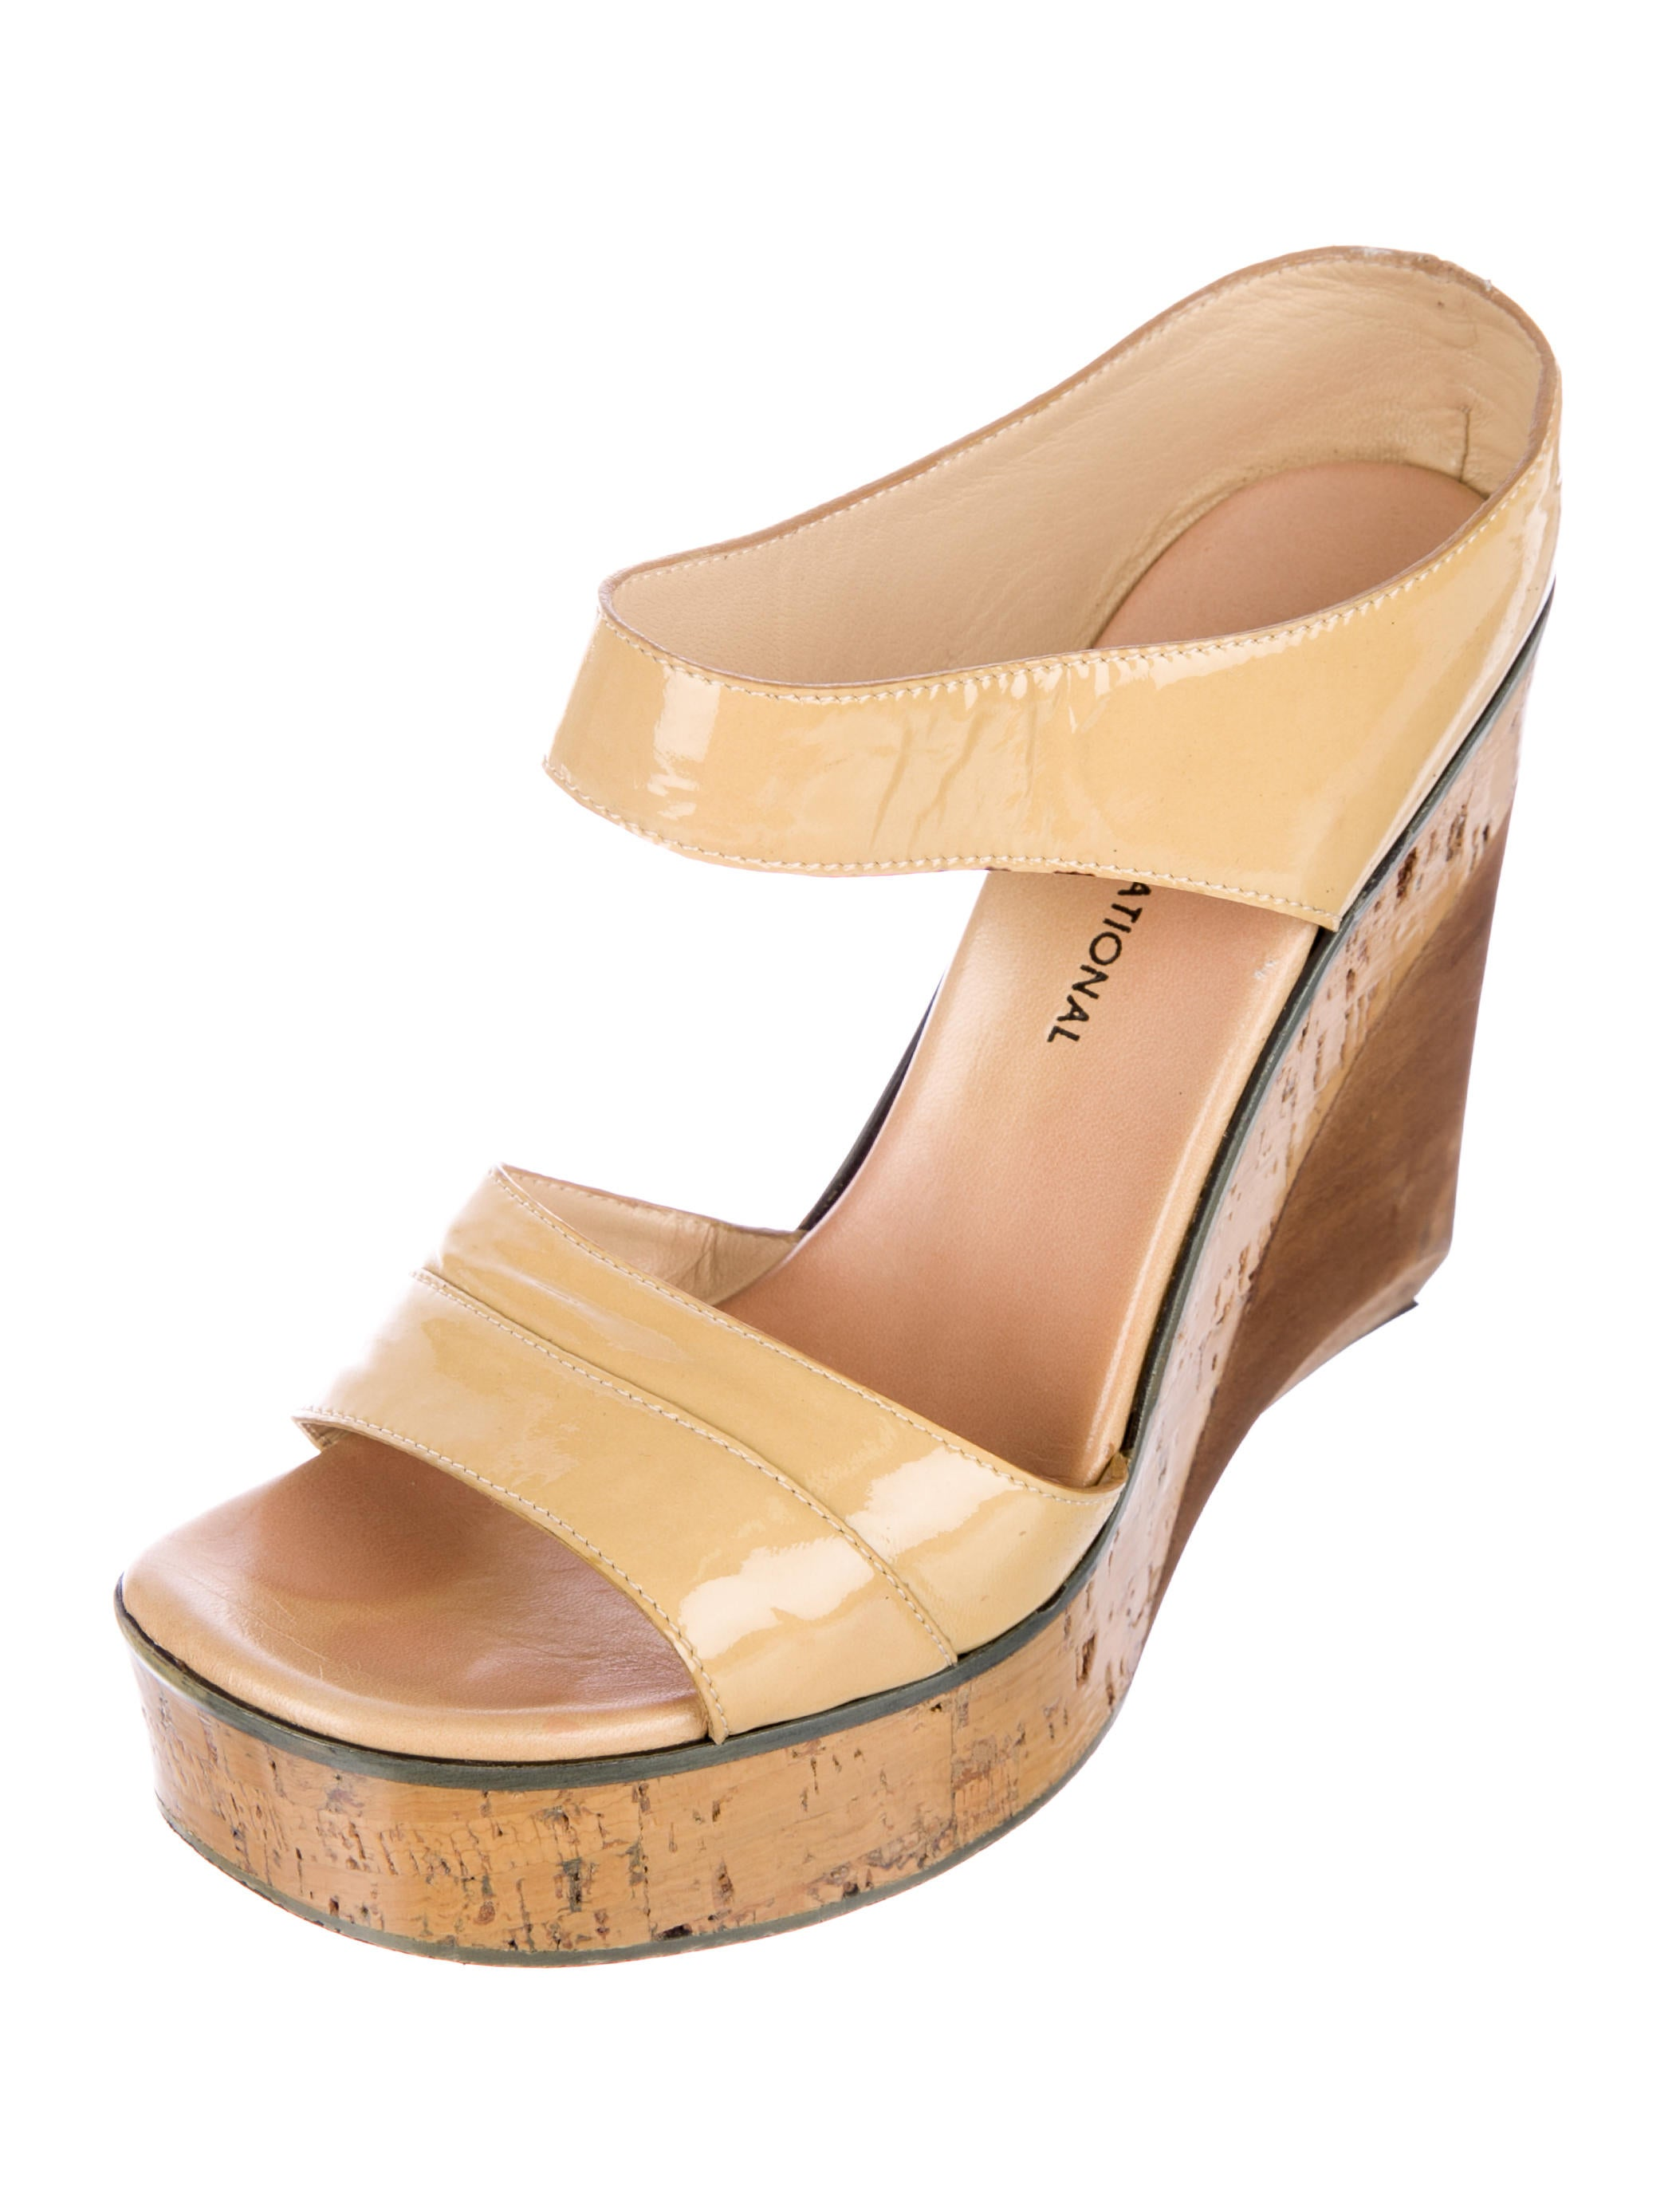 new arrival cheap price discount Costume National Patent Leather Wedge Sandals newest cheap online SkGxS